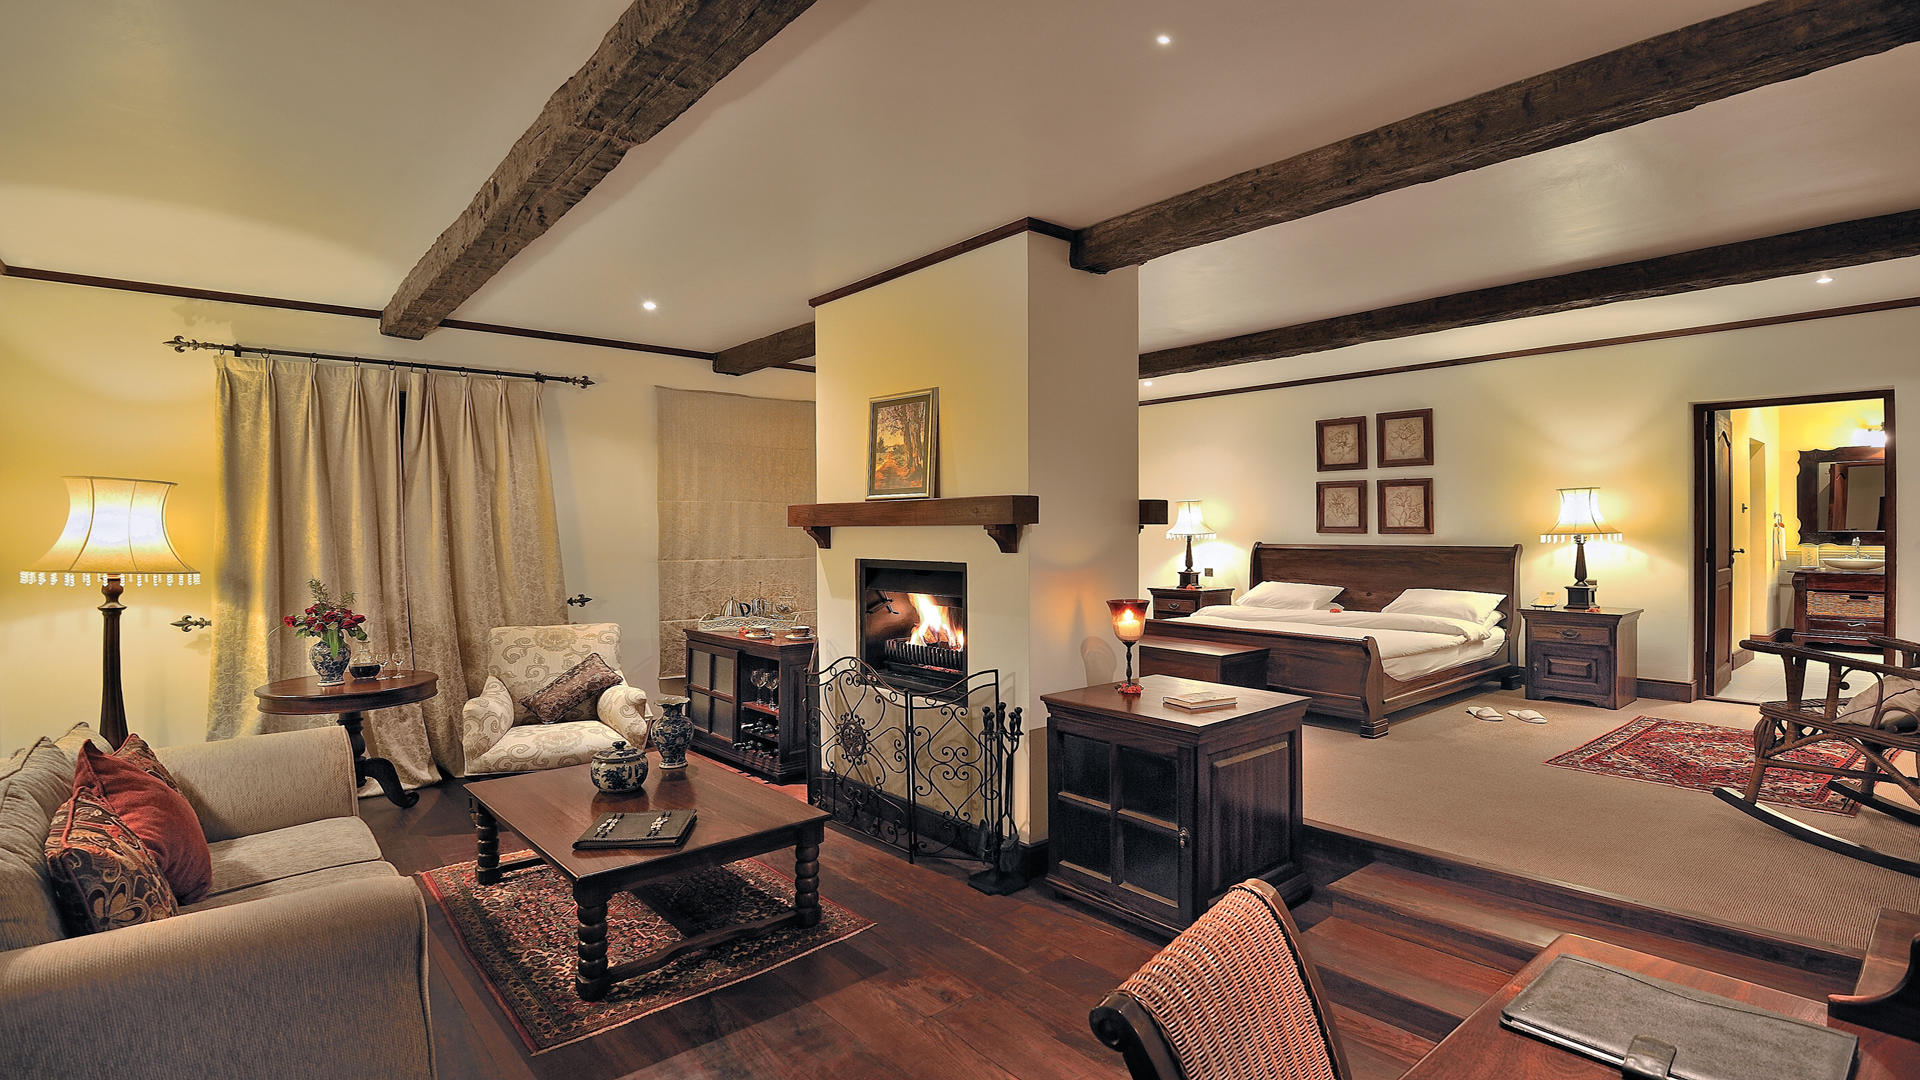 The-Manor-at-Ngorongoro---Cottage-Interior-2